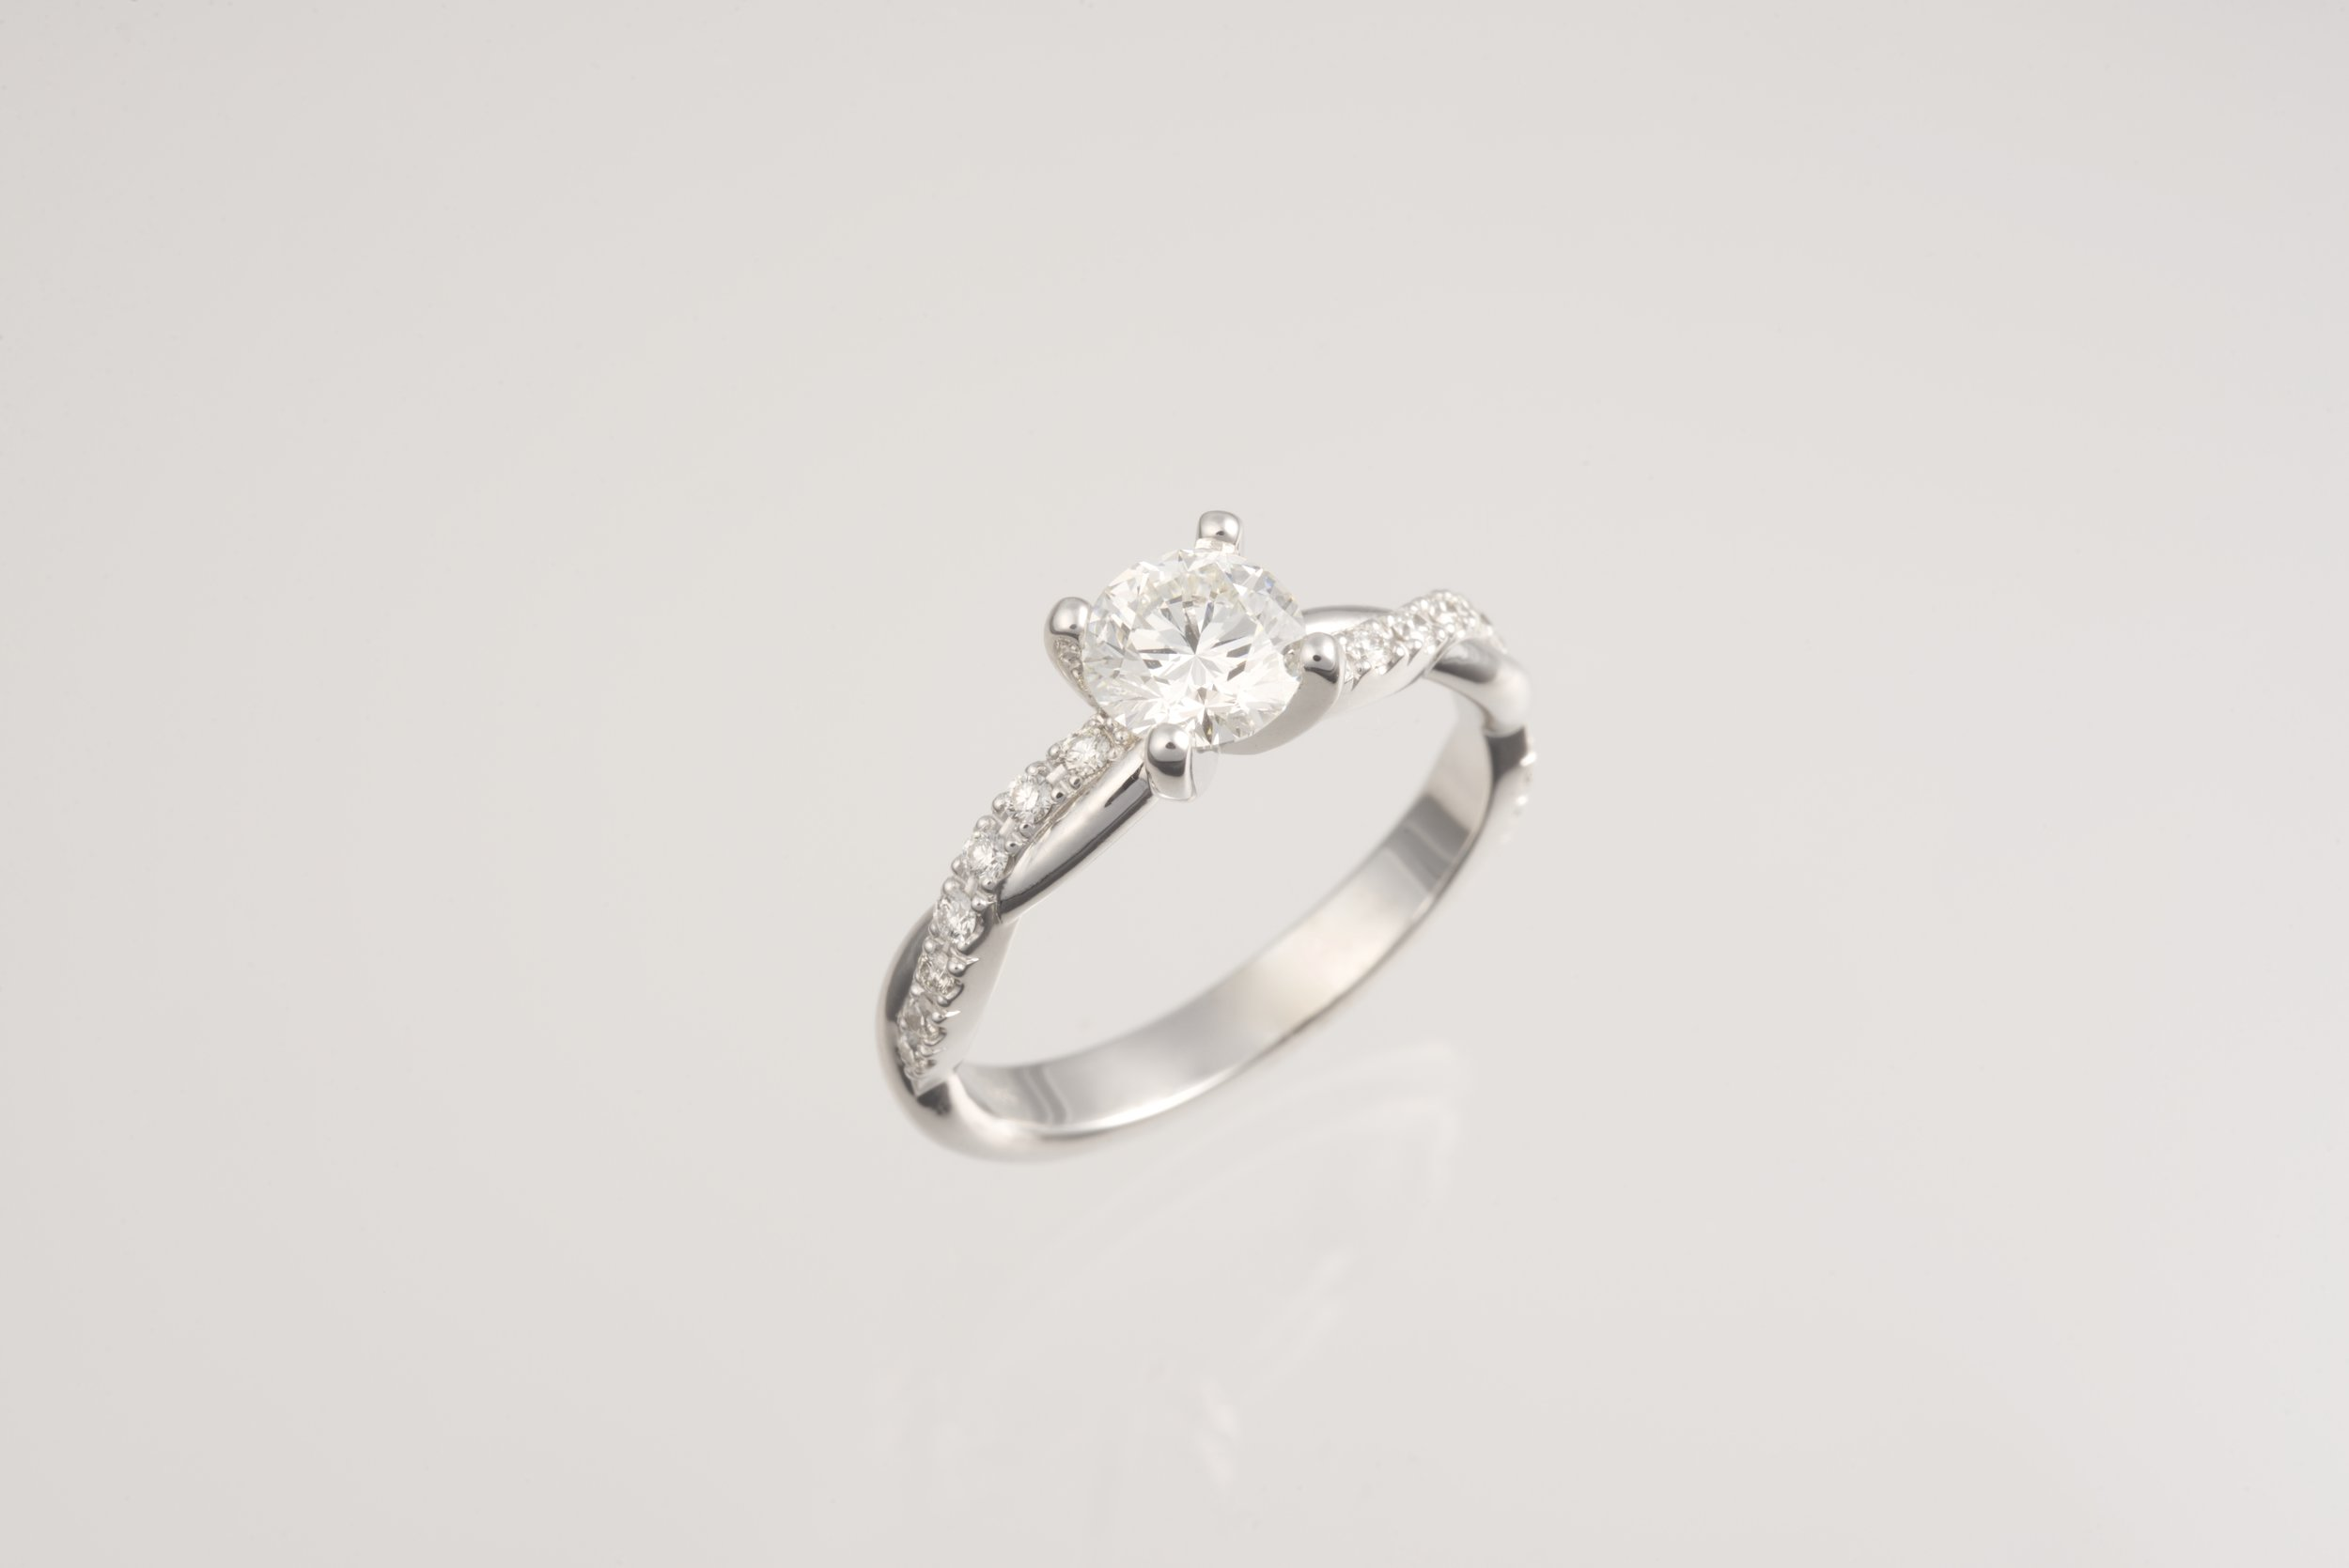 Our engagement ring, that exceeded our wildest dreams! Thank you, An!